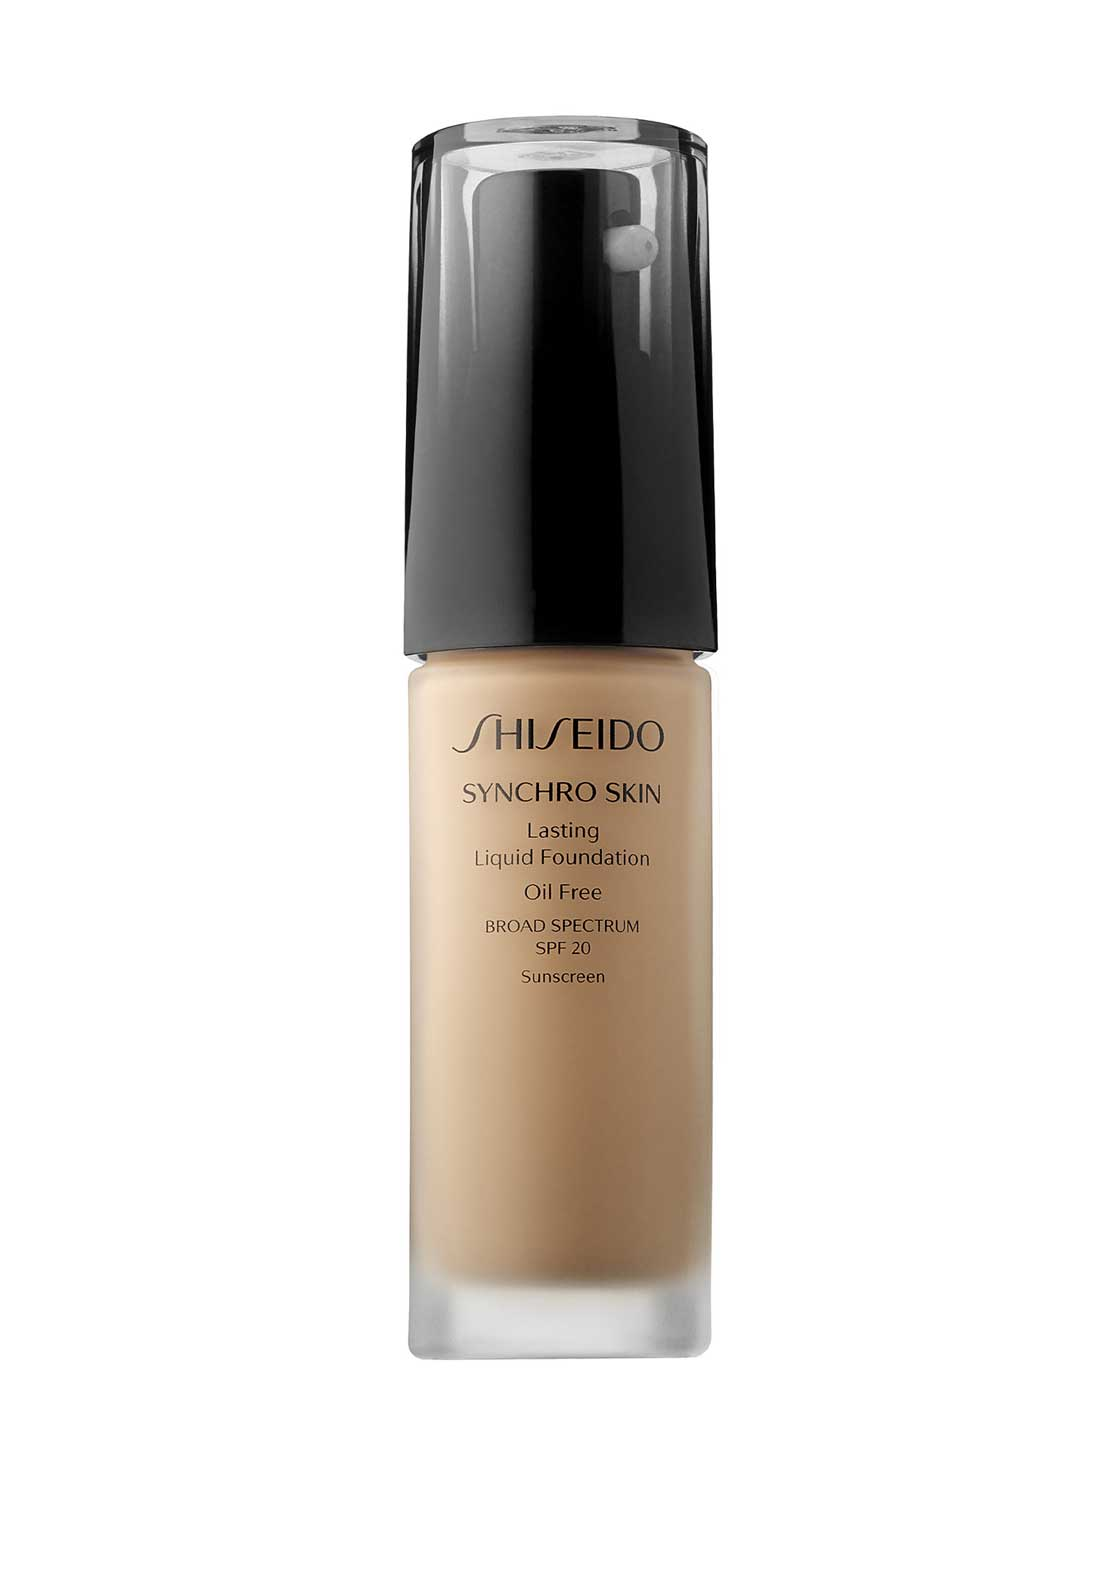 Shiseido Synchro Skin Lasting Liquid Foundation, Broad Spectrum SPF 20, Rose 4